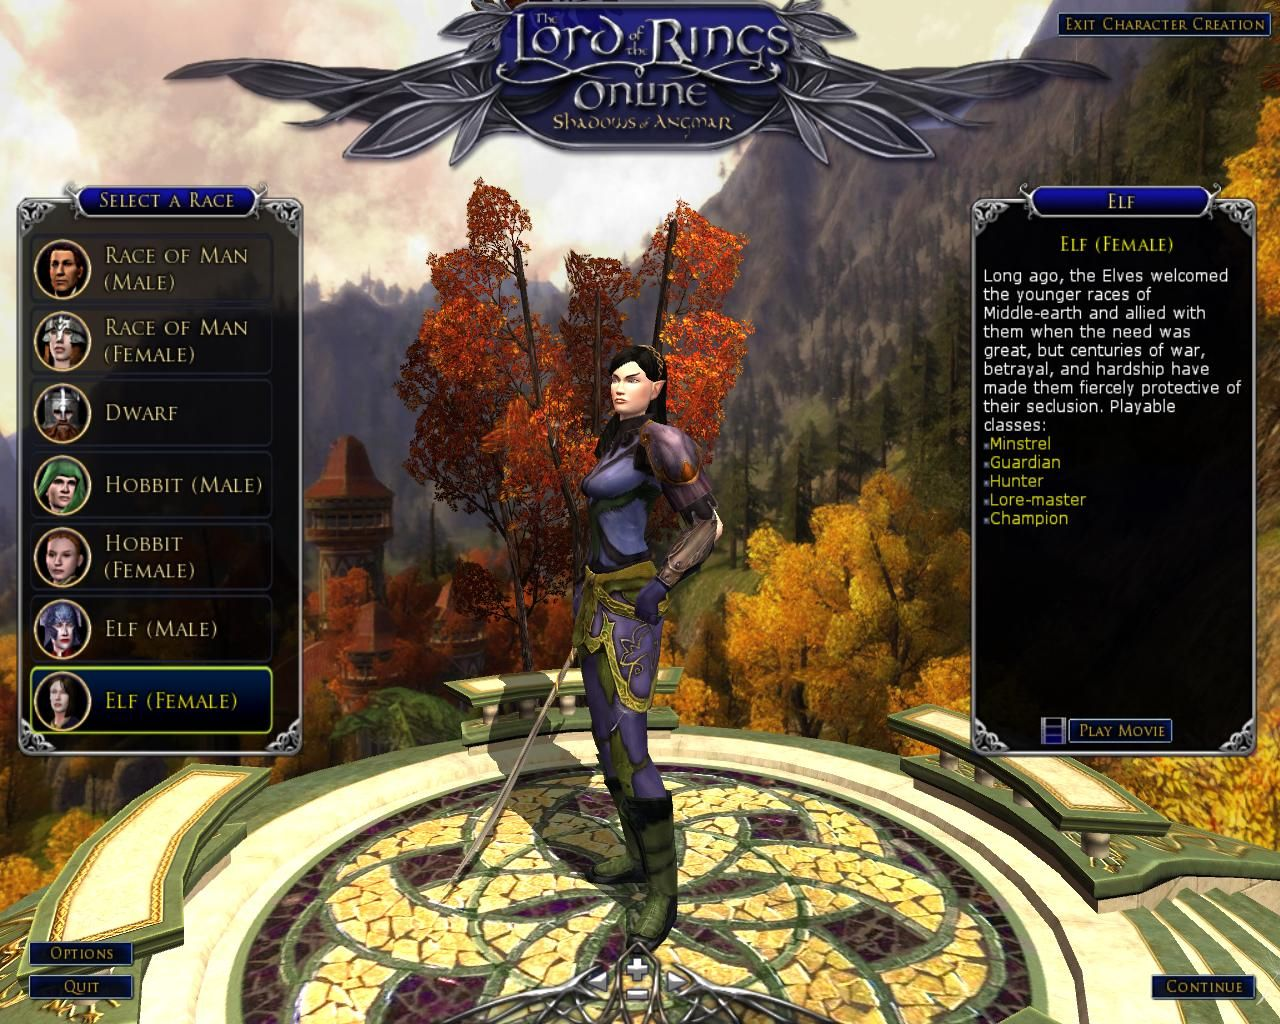 The Lord of the Rings Online Screenshots | GameWatcher